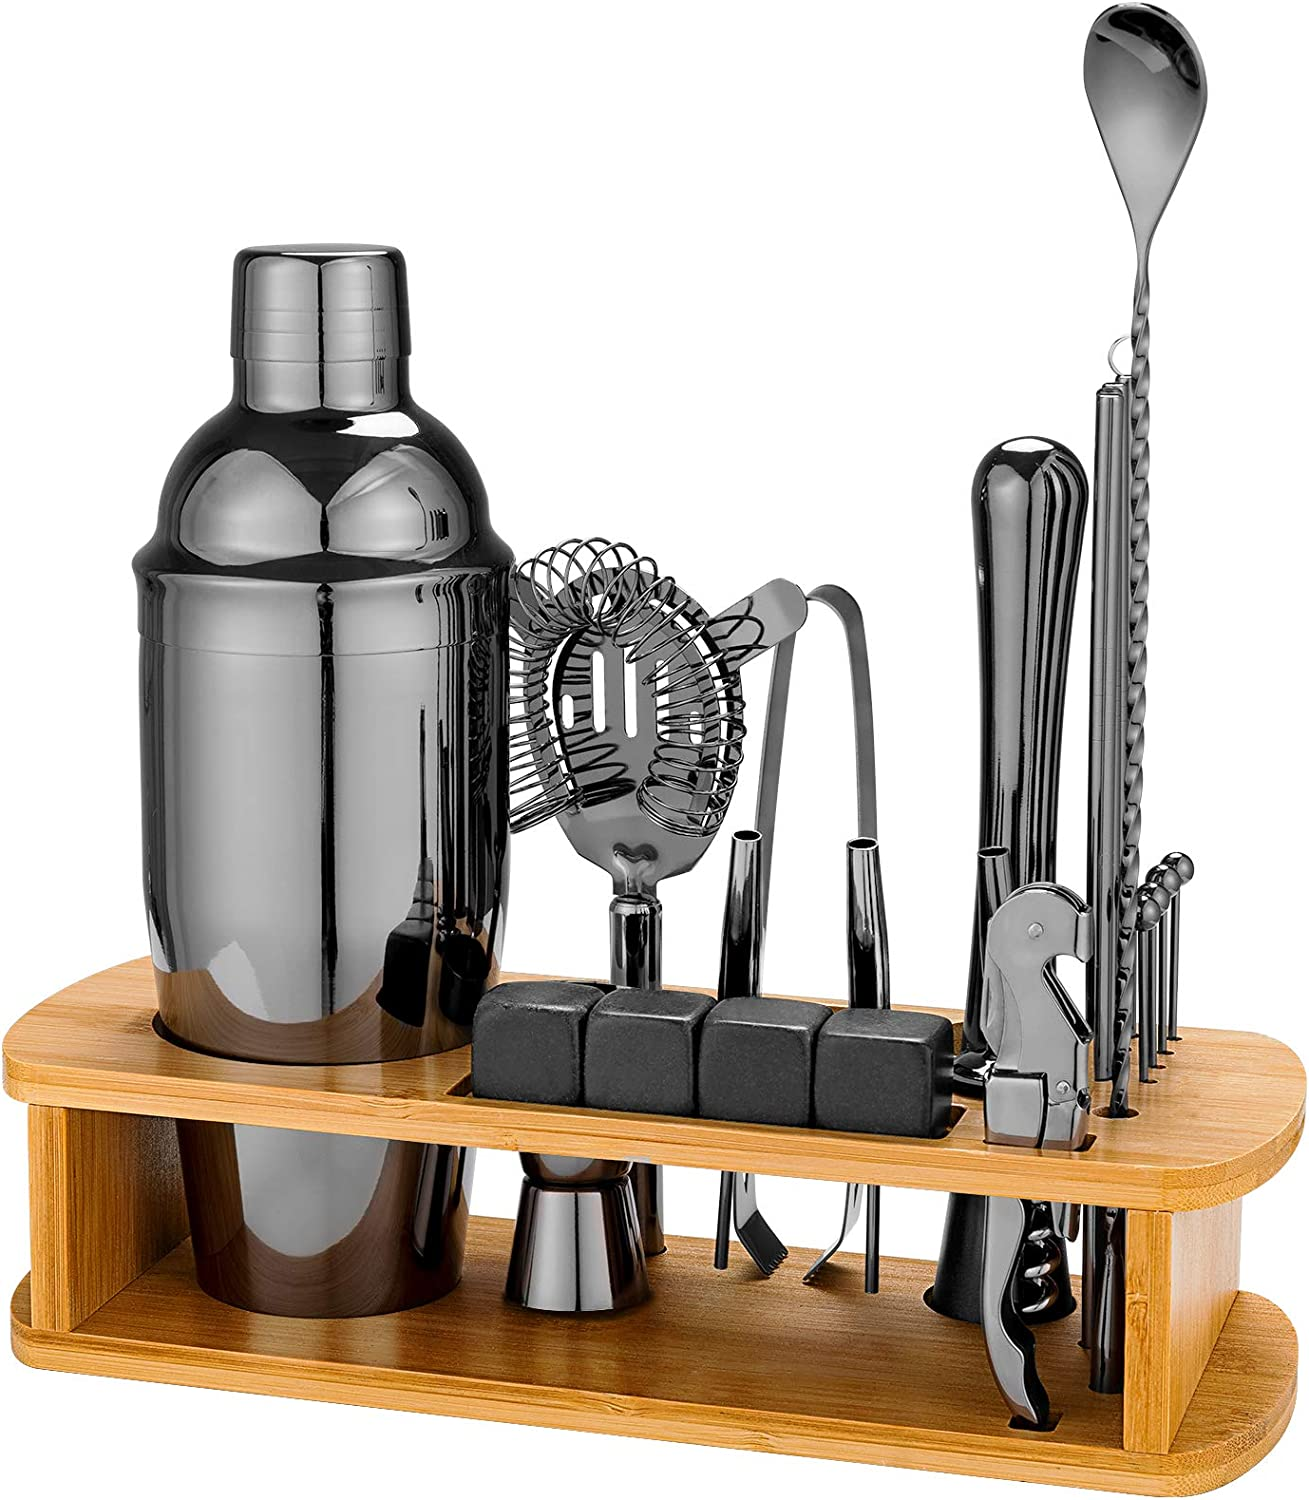 25 Piece Cocktail Shaker Set with Bamboo Stand,Stainless Steel Bartender Kit Bar Tools Set for Christmas Gift,Home, Bars, Parties and Traveling (Gun-Metal Black)